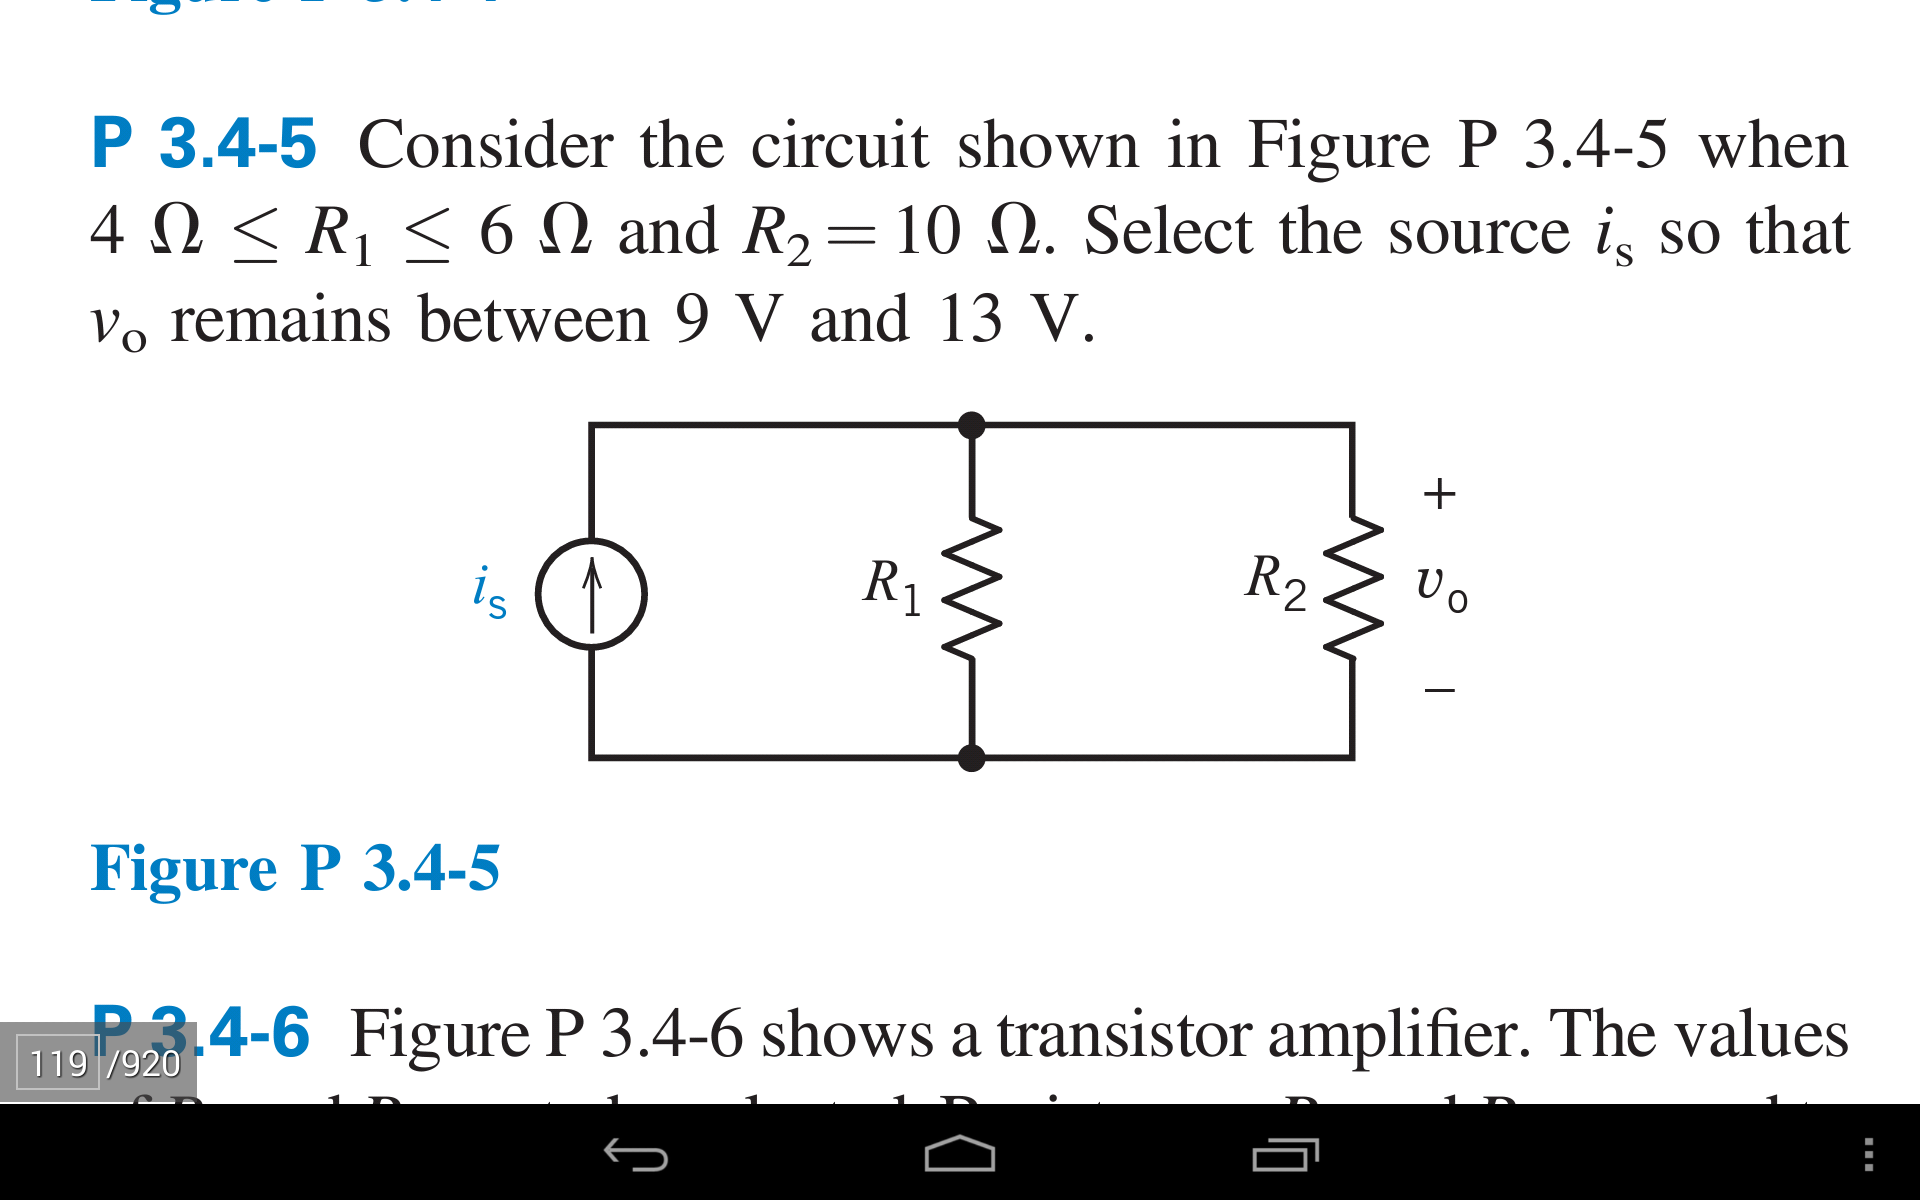 Consider the circuit shown in Figure P 3.4-5 when